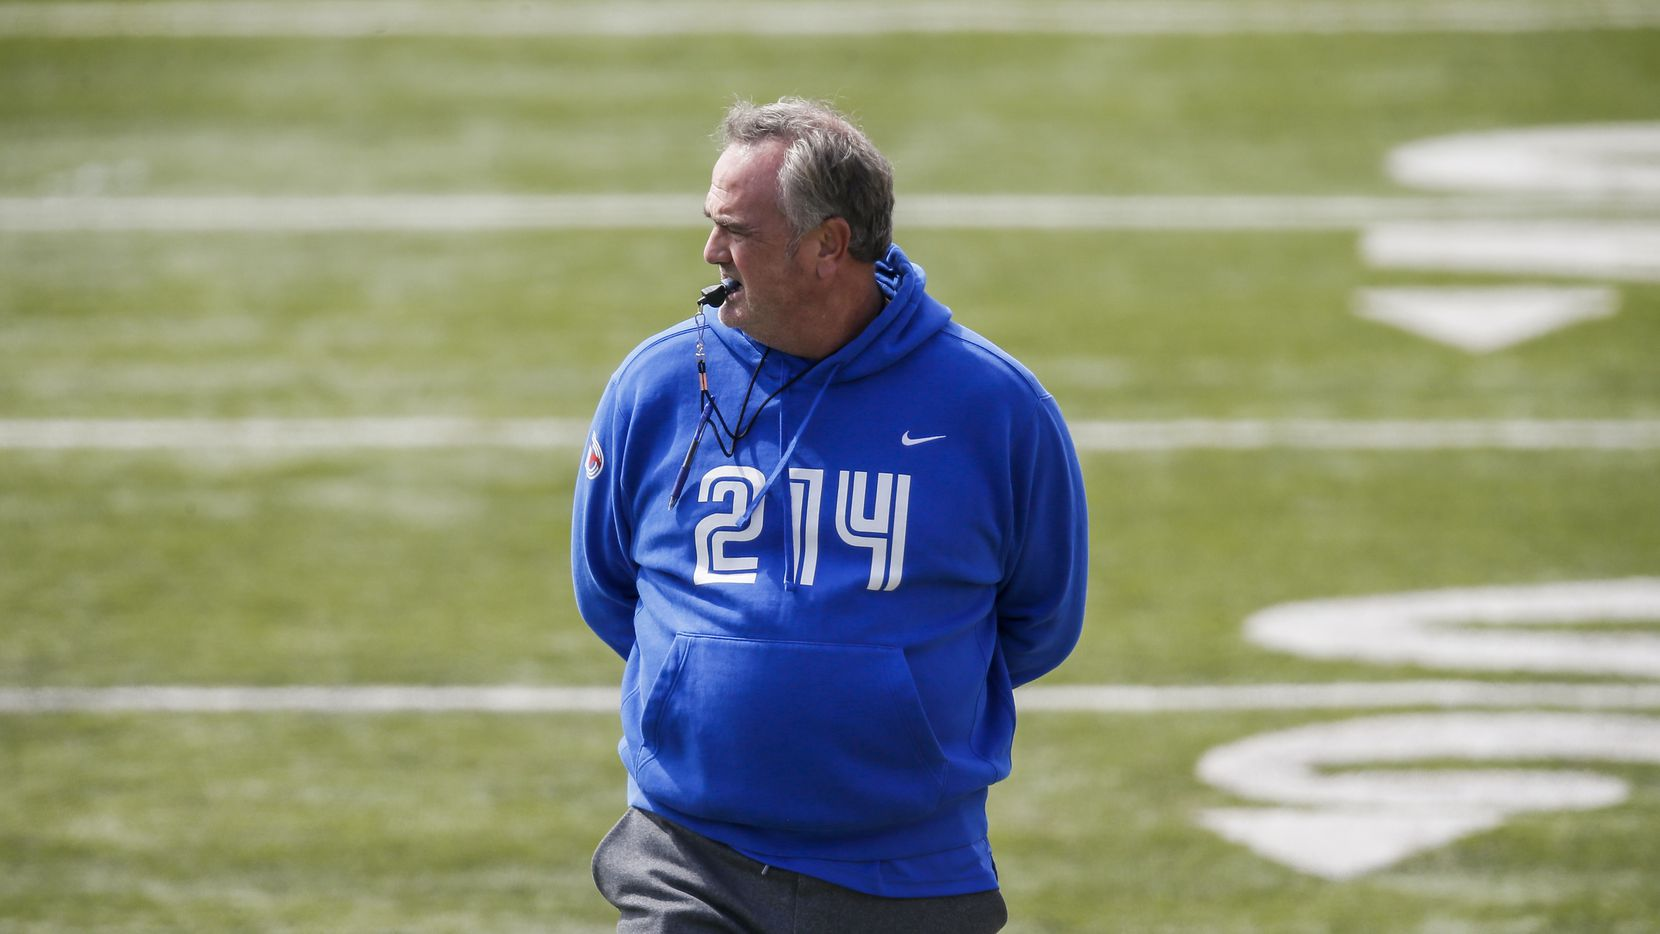 SMU head coach Sonny Dykes looks on during practice at Gerald Ford Stadium, Saturday, April 17, 2021.